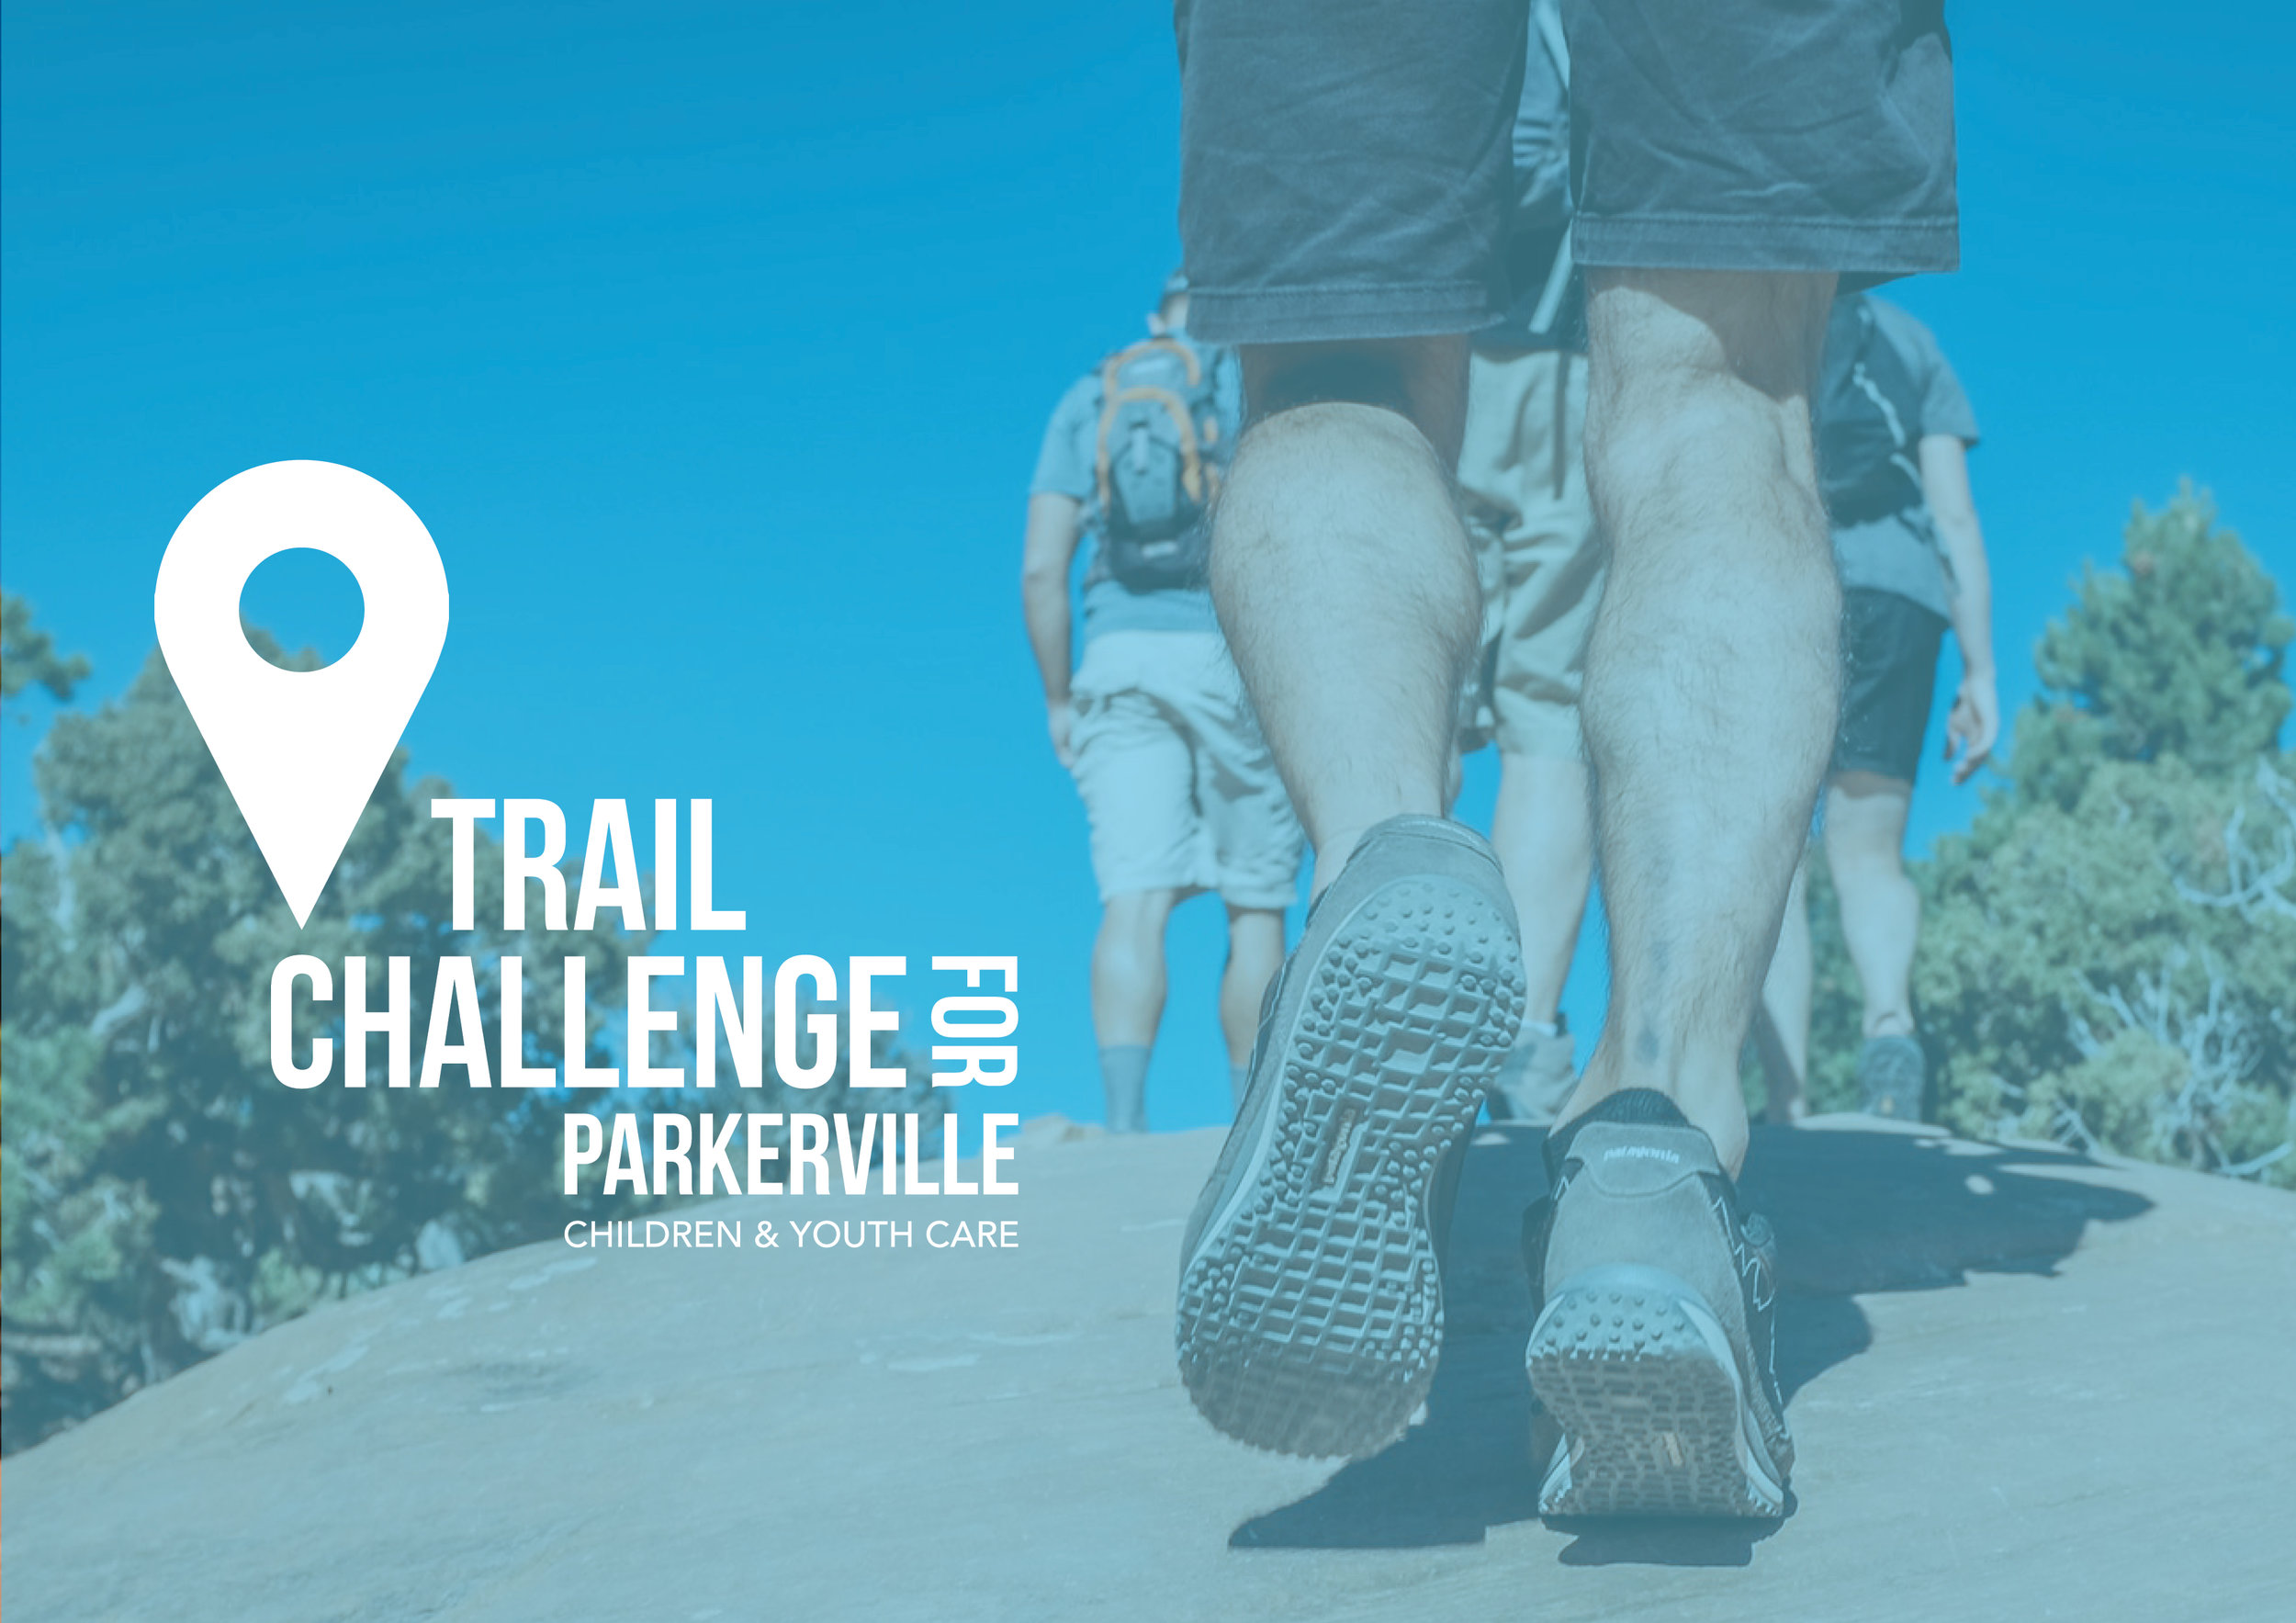 TRAIL CHALLENGE FOR PARKERVILLE